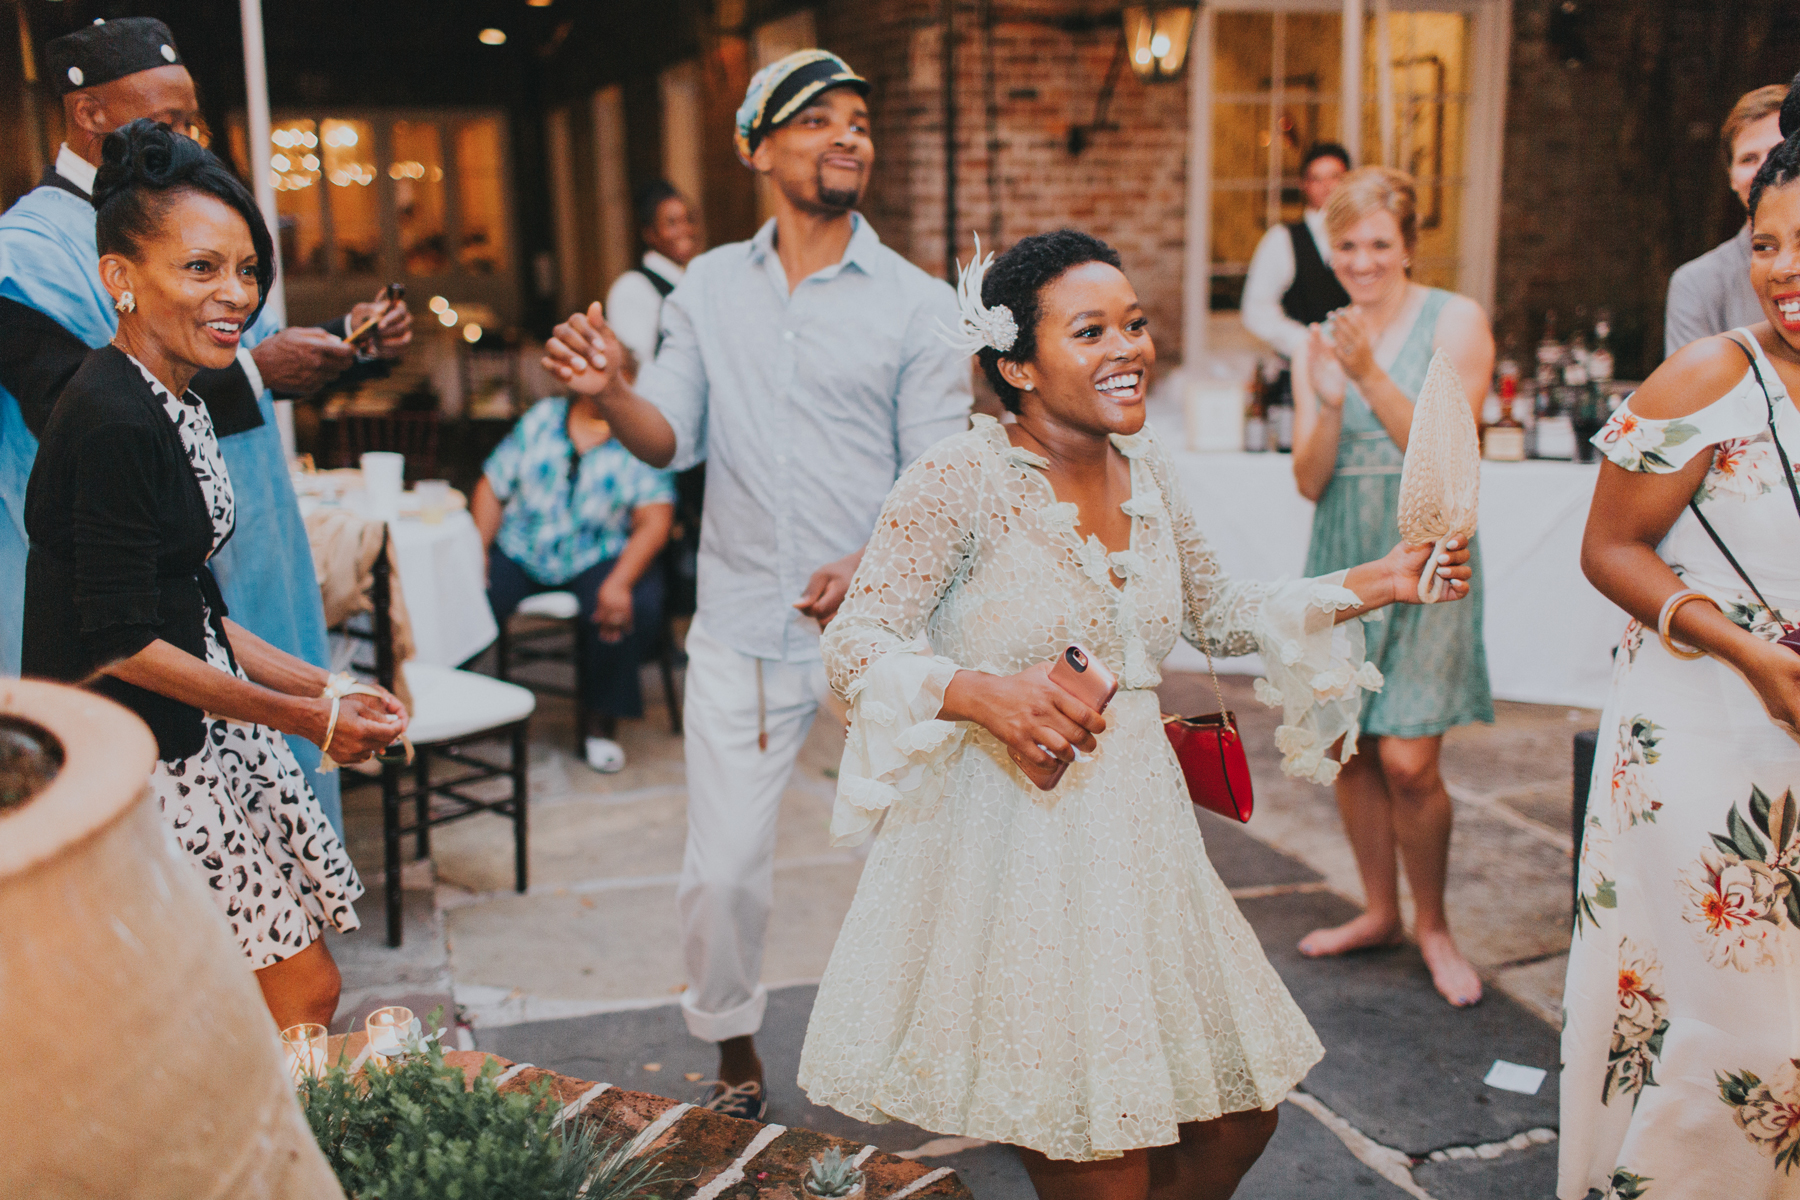 bride and groom dancing with guests at reception